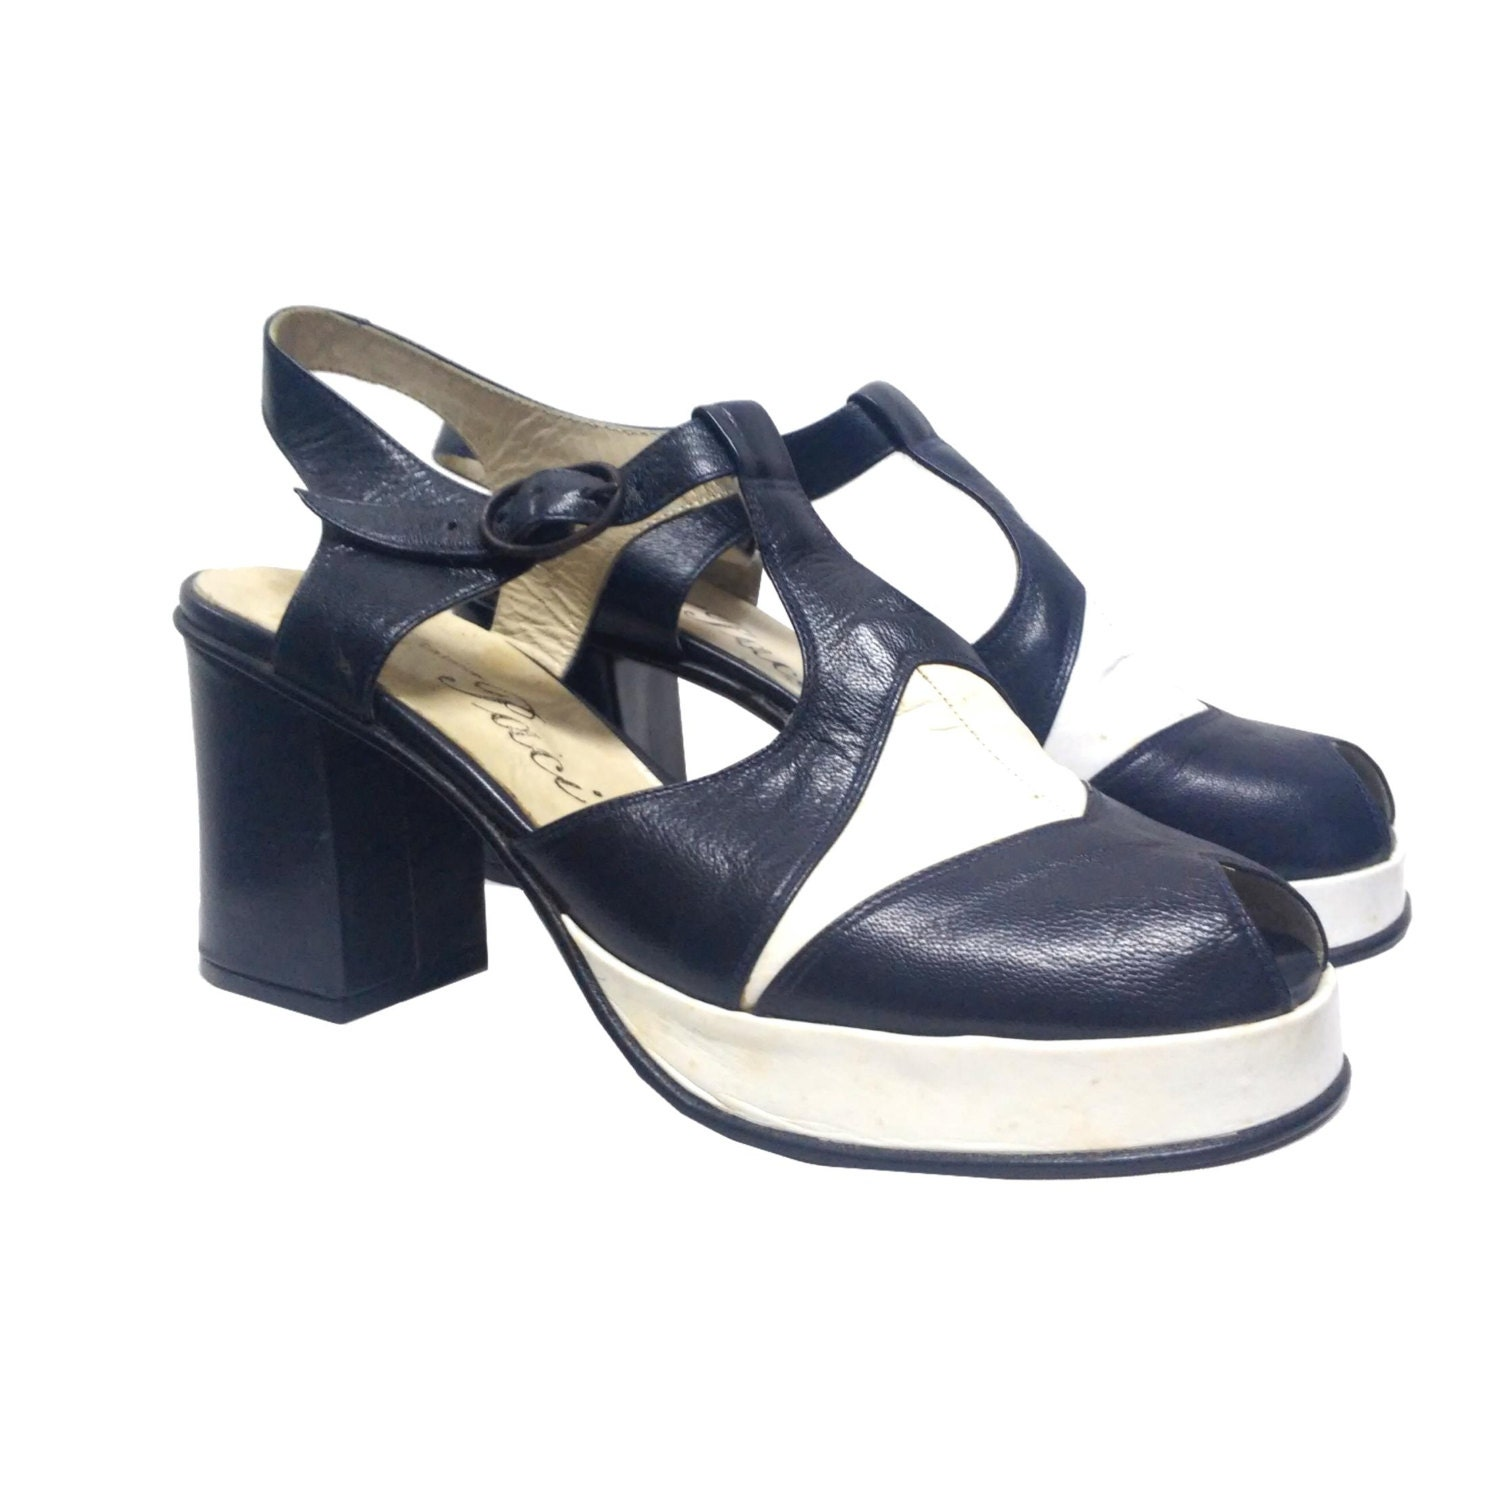 platform vintage shoes 70s new chuncky heel blue by lavfashion